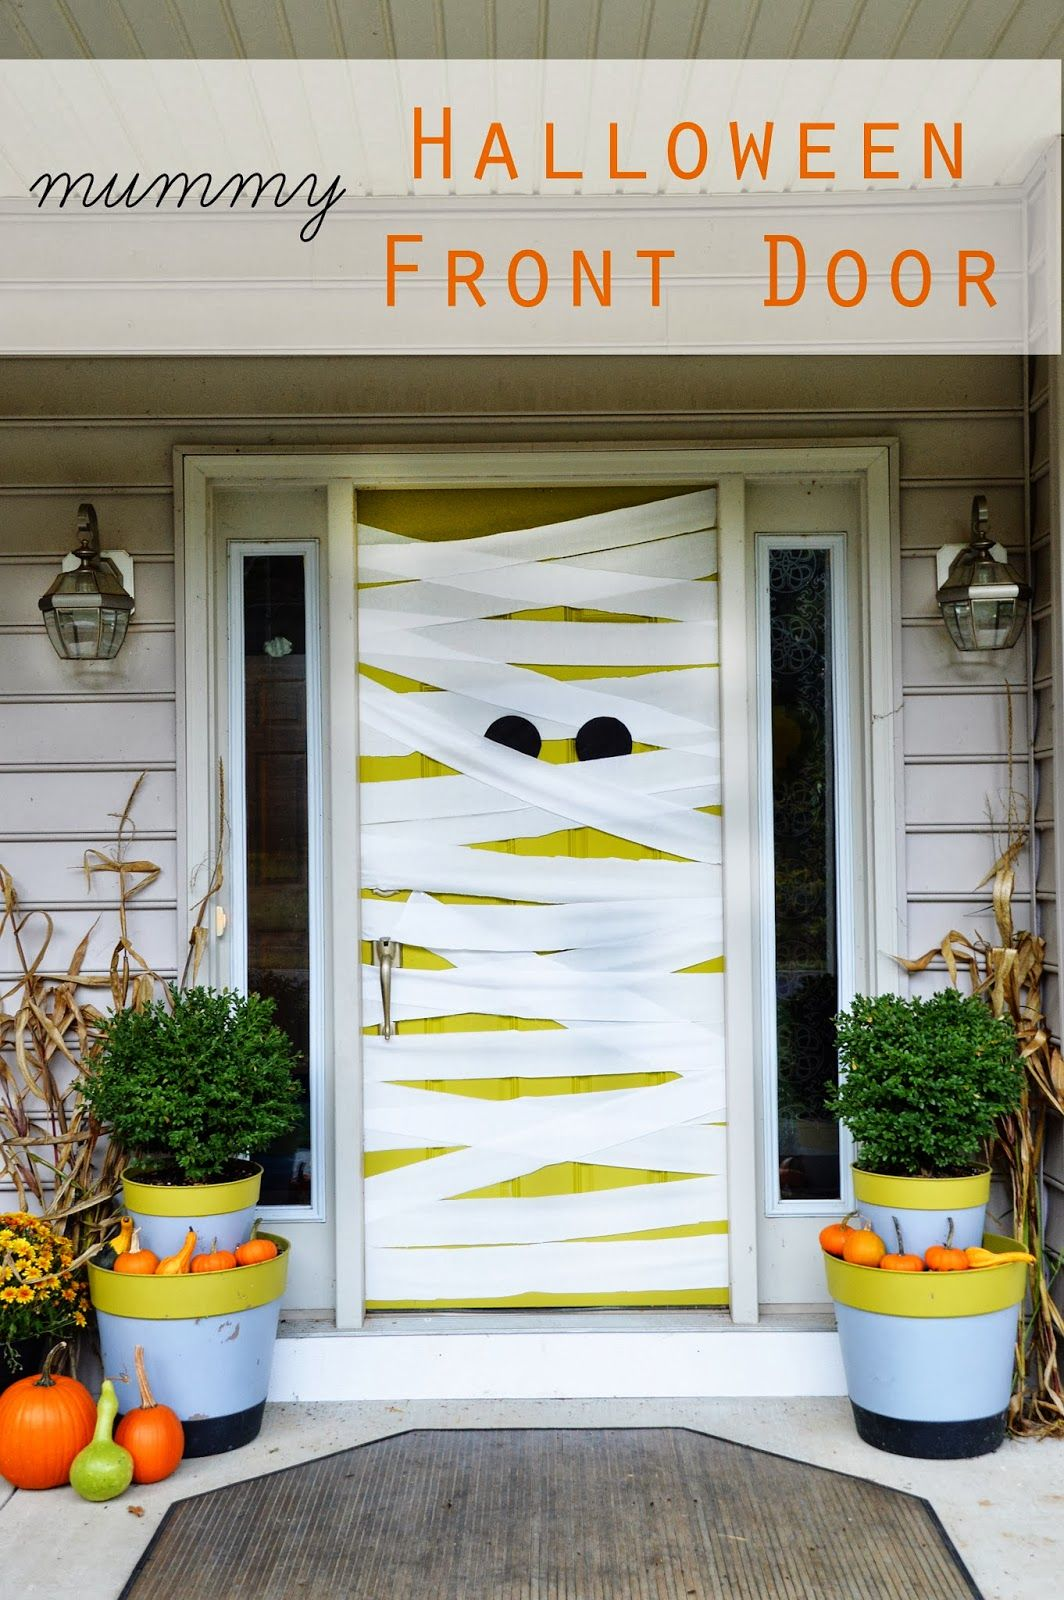 Fall  Halloween Porch Decor \u2013 East Coast Creative Blog holidays